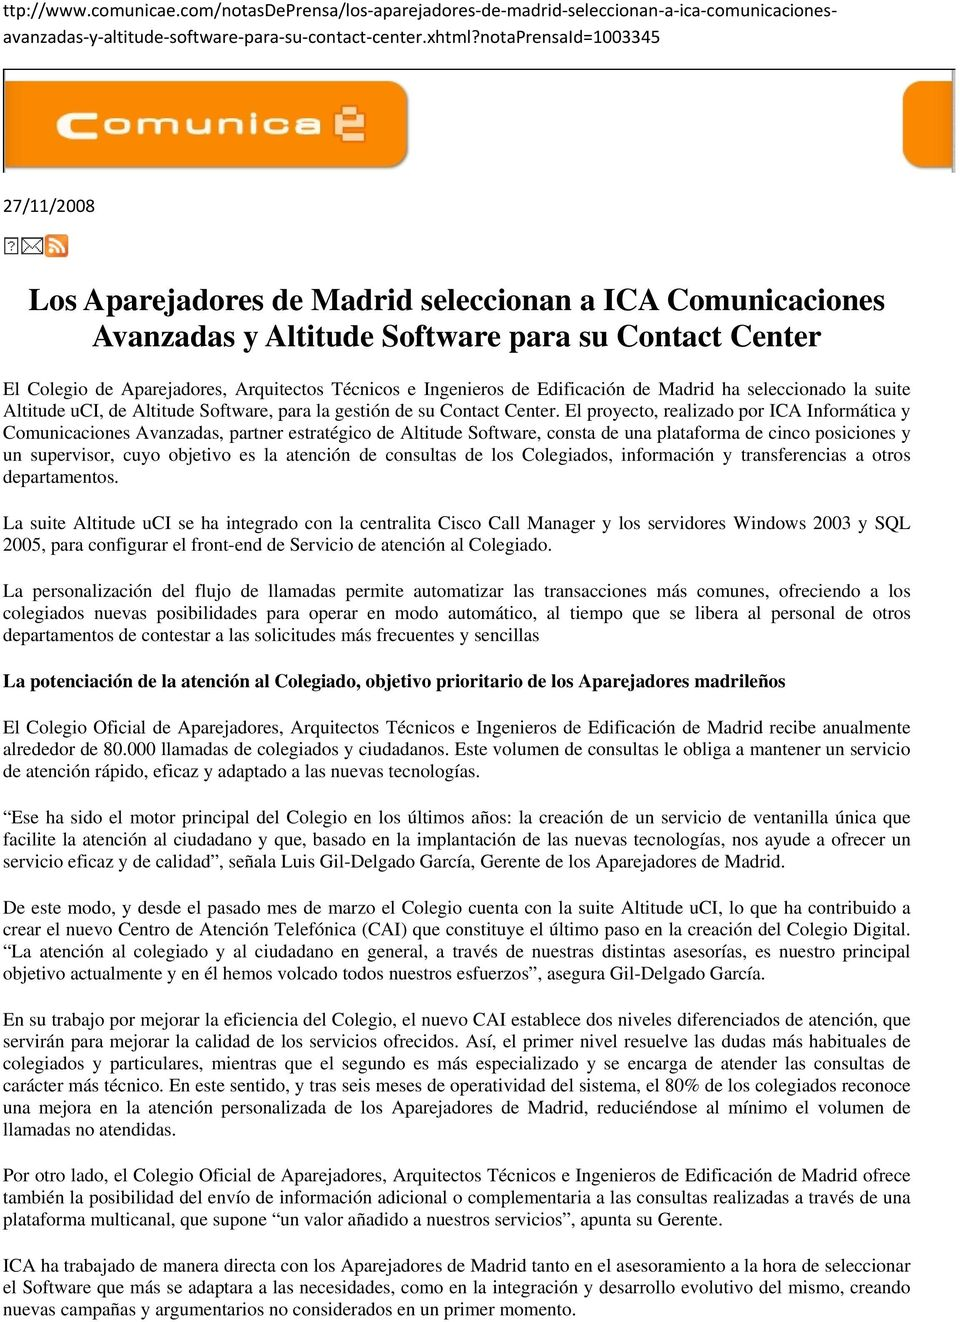 Ingenieros de Edificación de Madrid ha seleccionado la suite Altitude uci, de Altitude Software, para la gestión de su Contact Center.